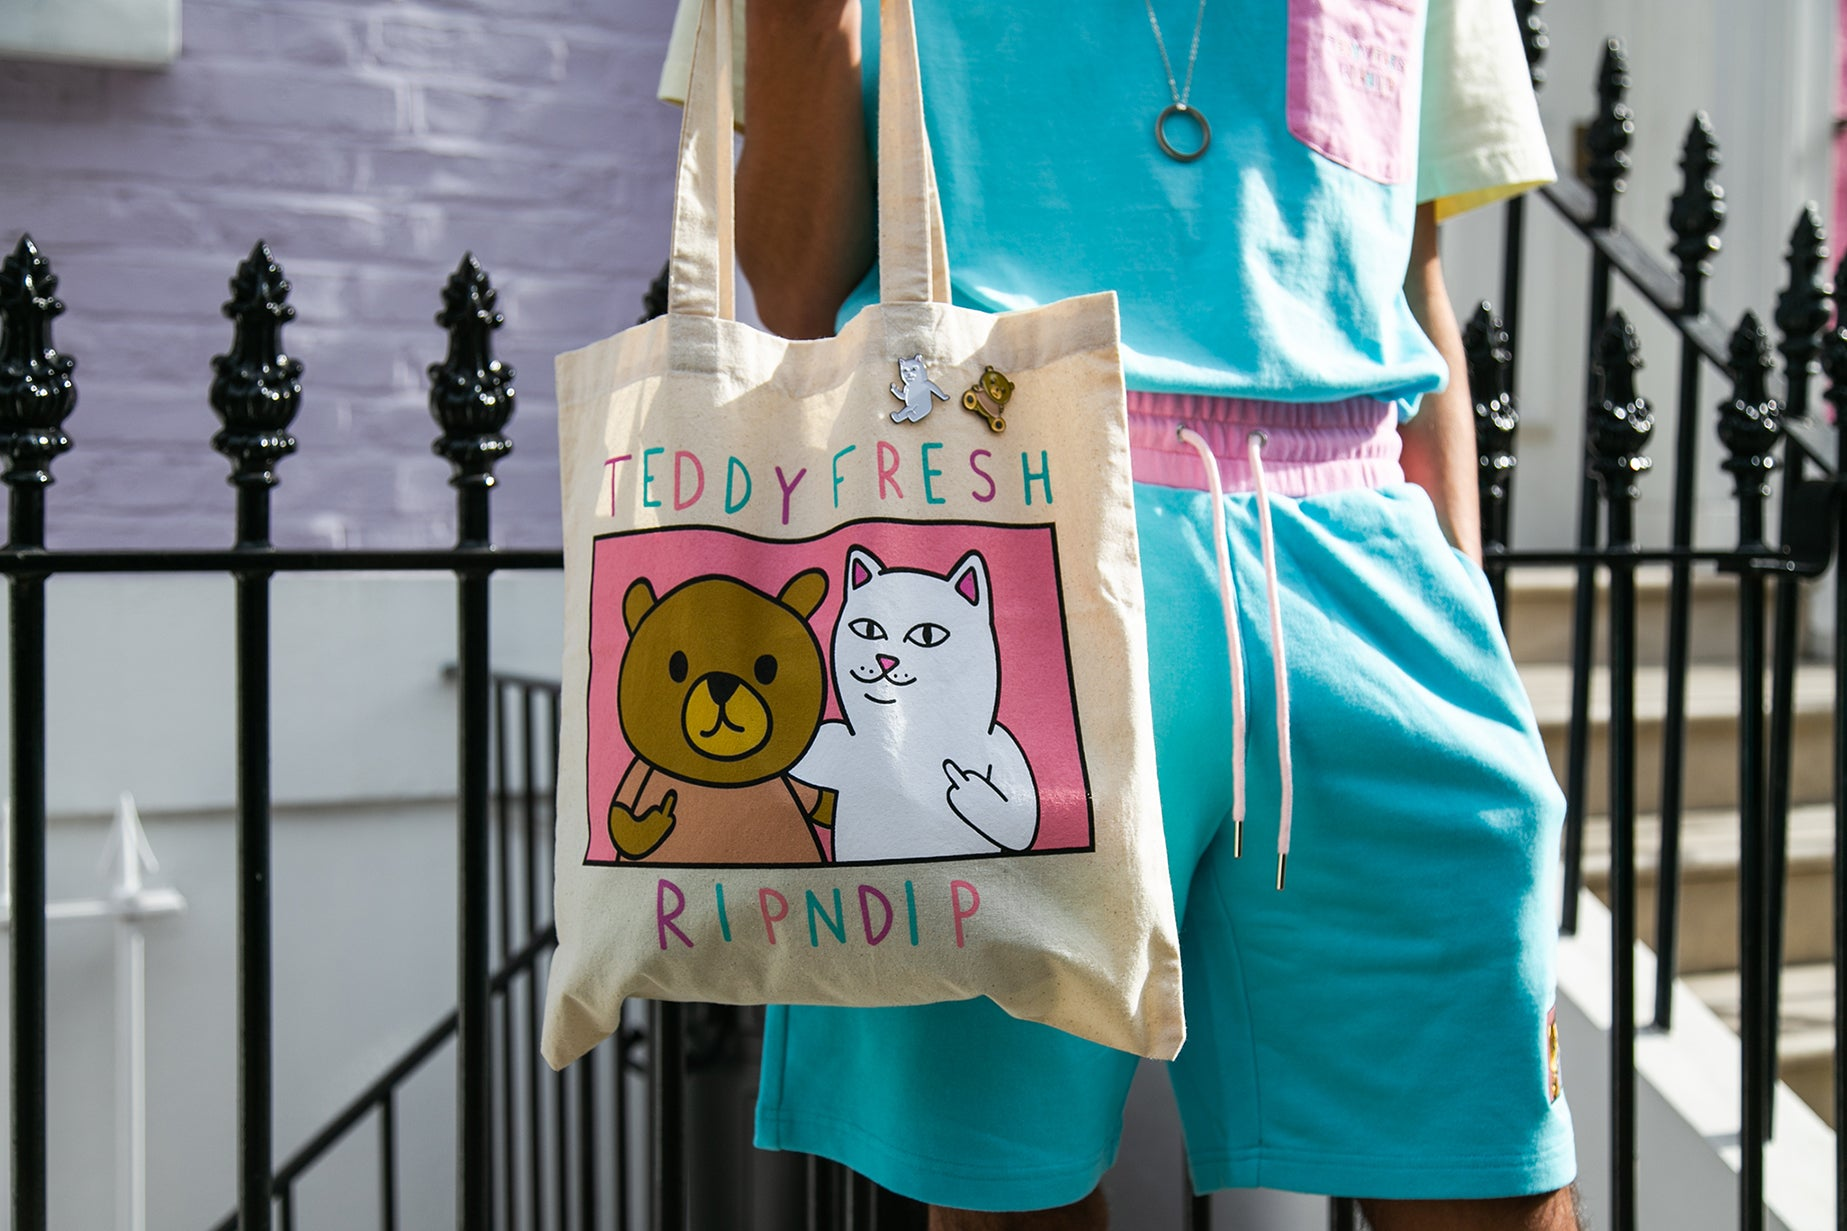 Teddy Fresh x RIPNDIP (1)